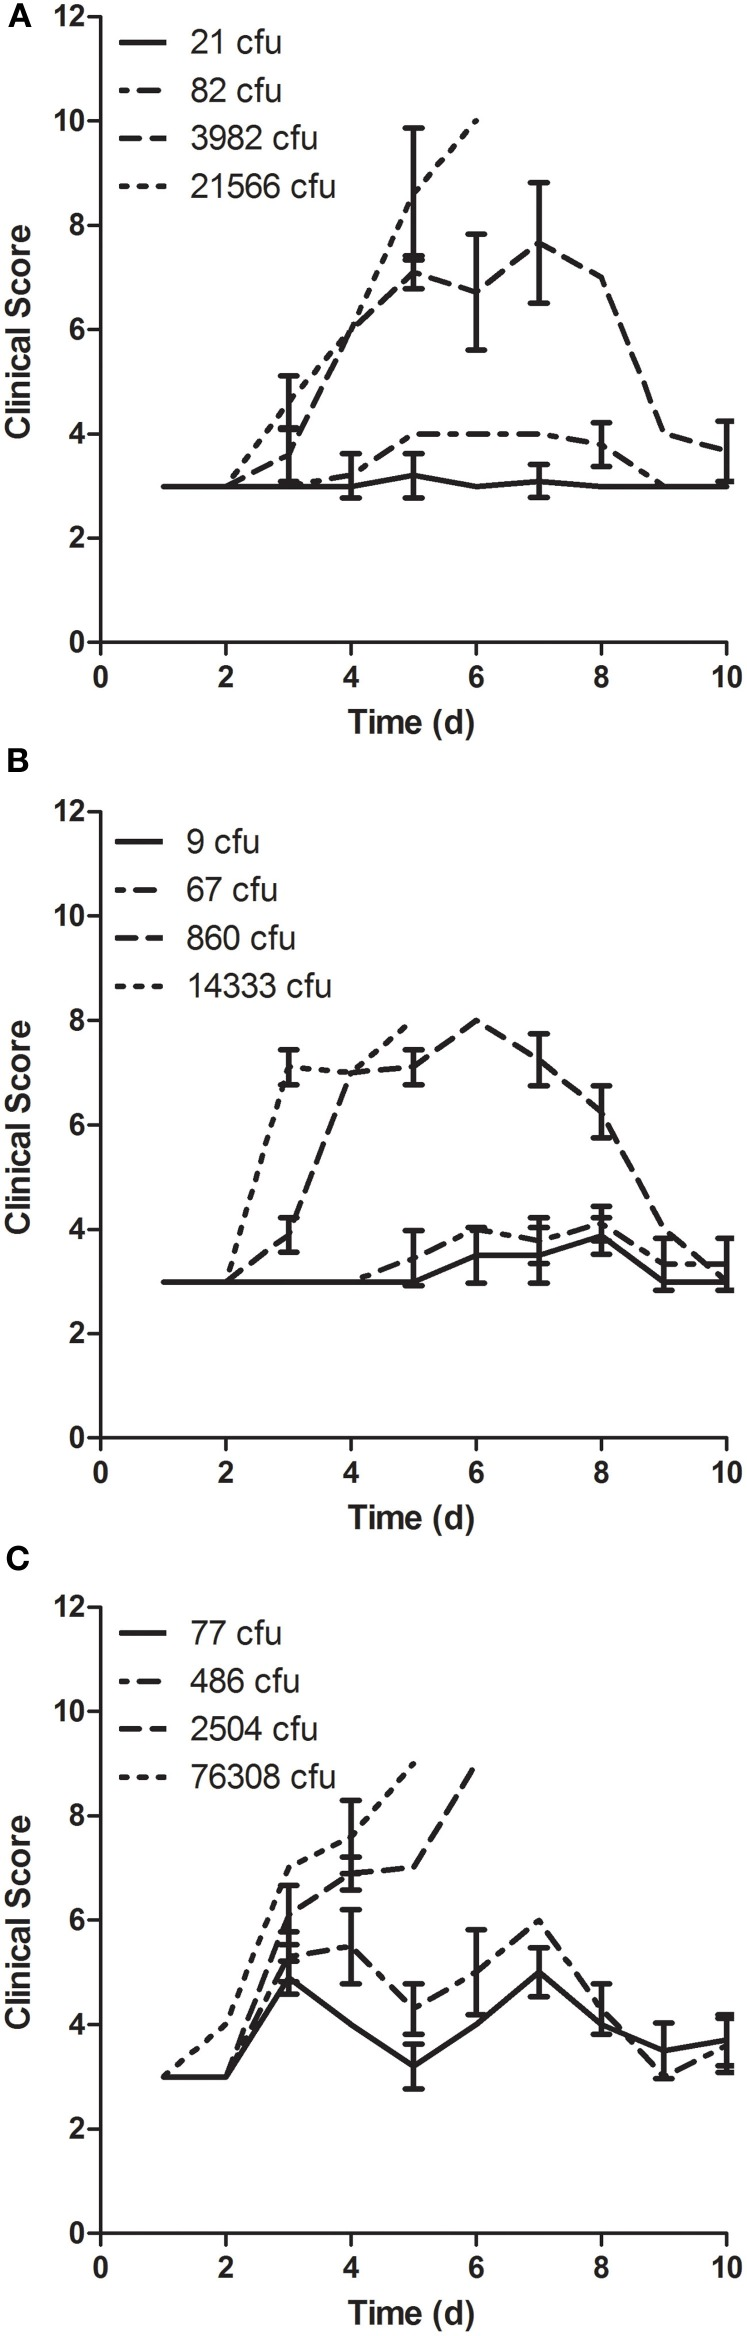 Clinical scoring of disease in mice after aerosol exposure to LVS grown in different culture media. Mice were scored daily beginning the day of exposure and continuing through day 10 after infection for changes in behavior and appearance. Mice were exposed to aerosols containing LVS grown in (A) MHb, (B) <t>CCDM,</t> and (C) <t>BHI</t> at a range of doses ( n = 10 per dose). Graphs show average daily score for each group; error bars show standard deviation.